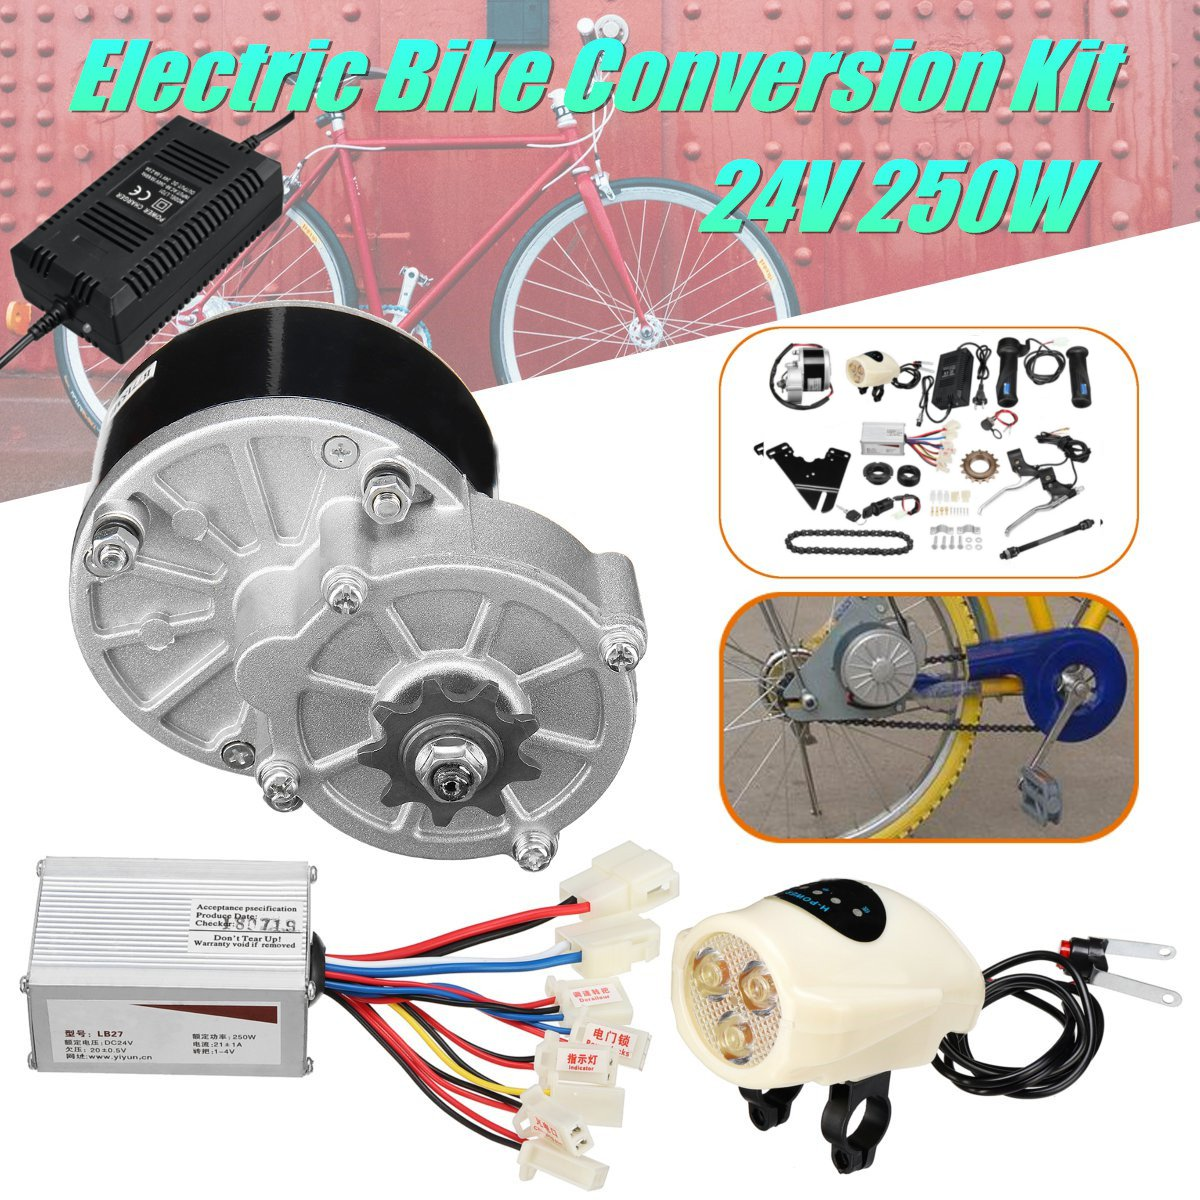 24V 250W Motor Controller Electric Bike Kit Electric Bicycle Conversion Kit for Ordinary Common Electric Bicycle Accessories